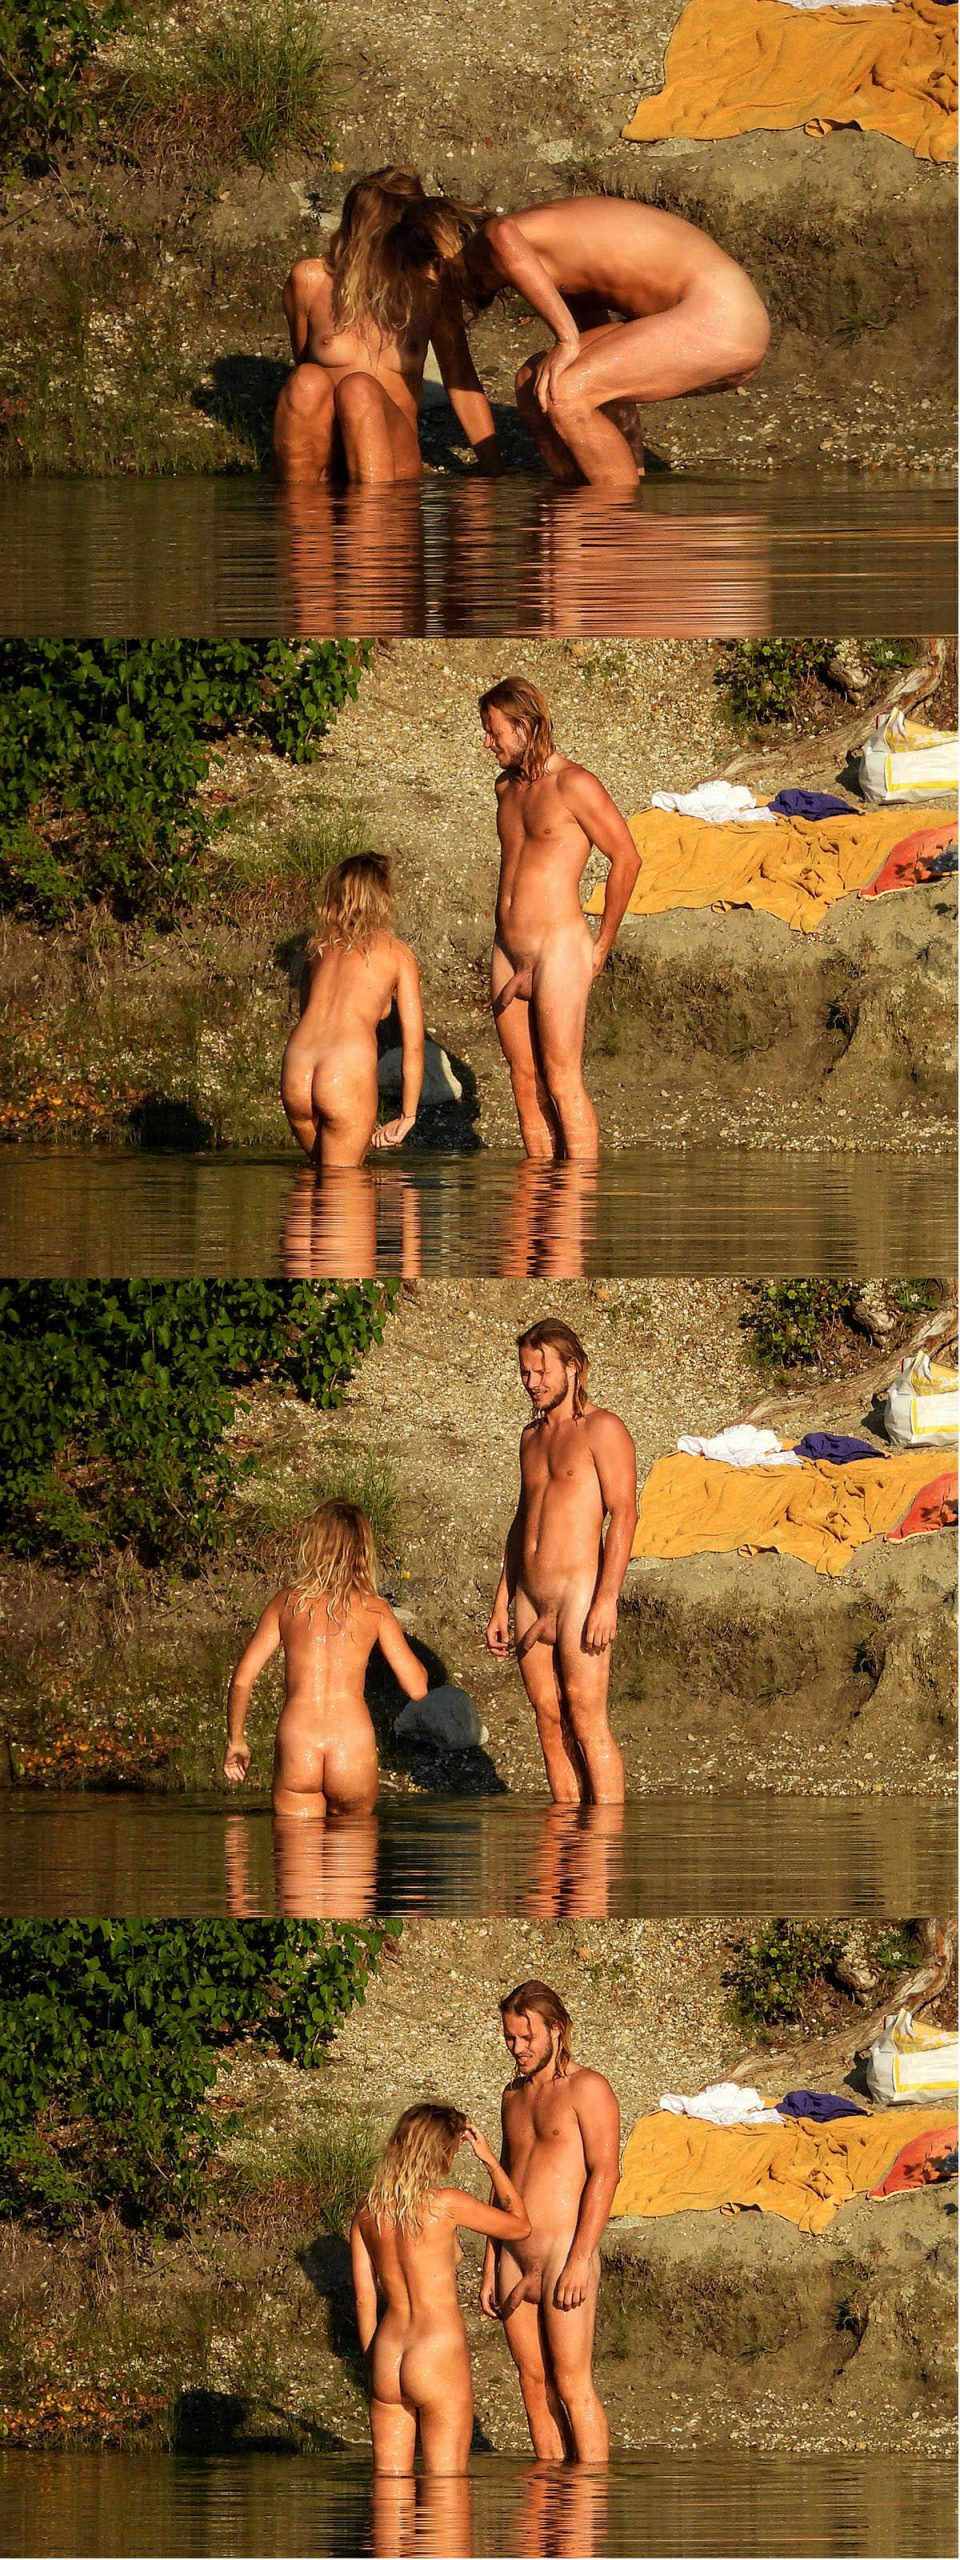 straight uncut nudist guy with long hair